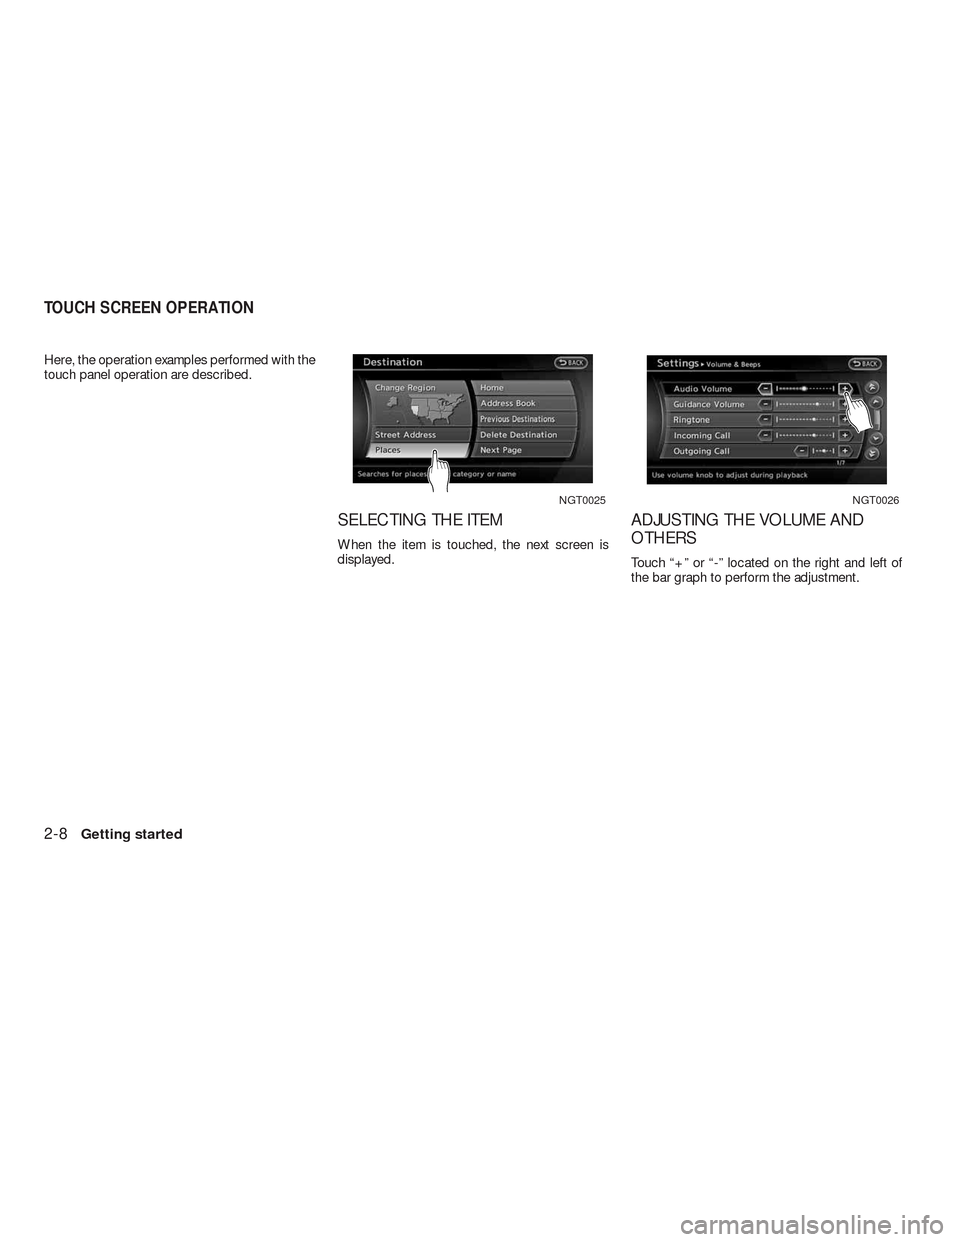 NISSAN ALTIMA COUPE 2010 D32 / 4.G Navigation Manual, Page 15